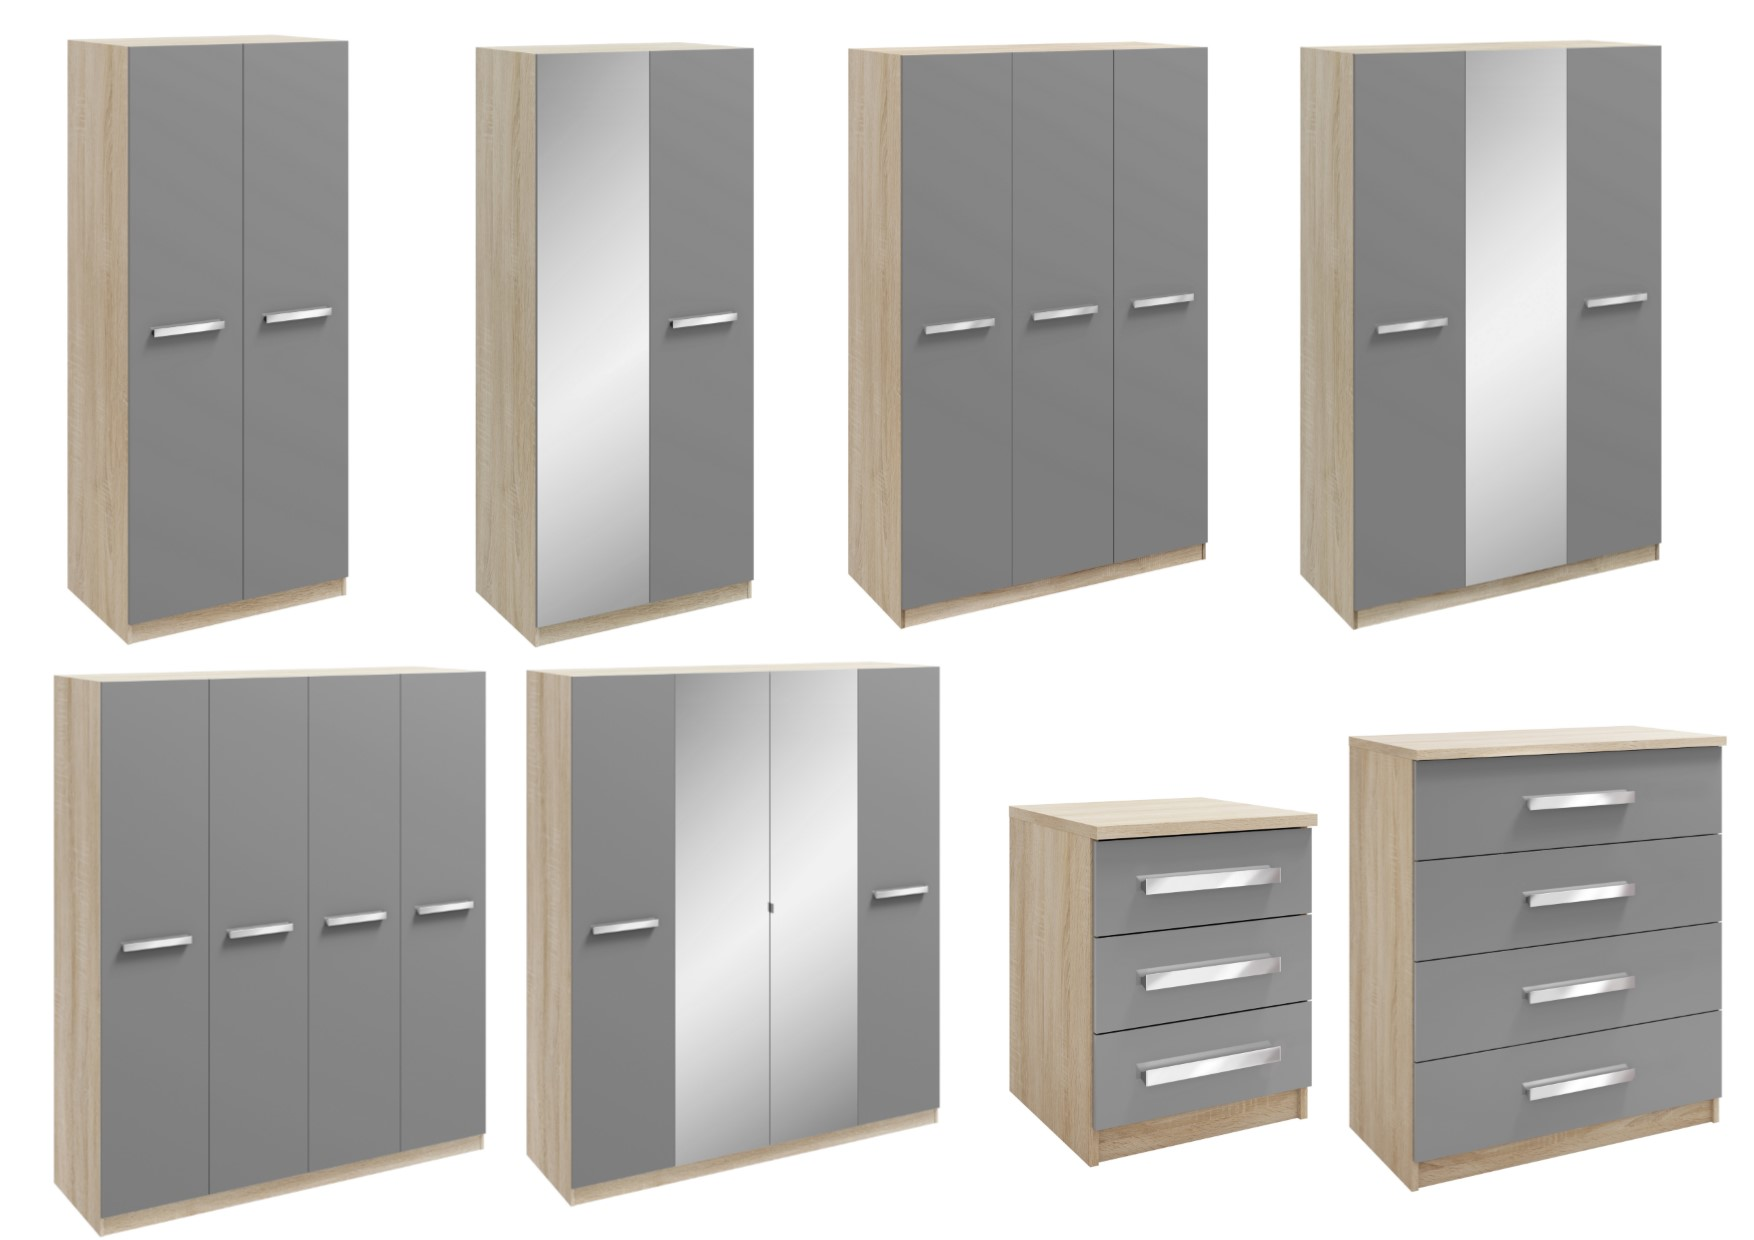 Genoa Oak Grey High Gloss Bedroom Furniture Range Wardrobes Bedside Drawers